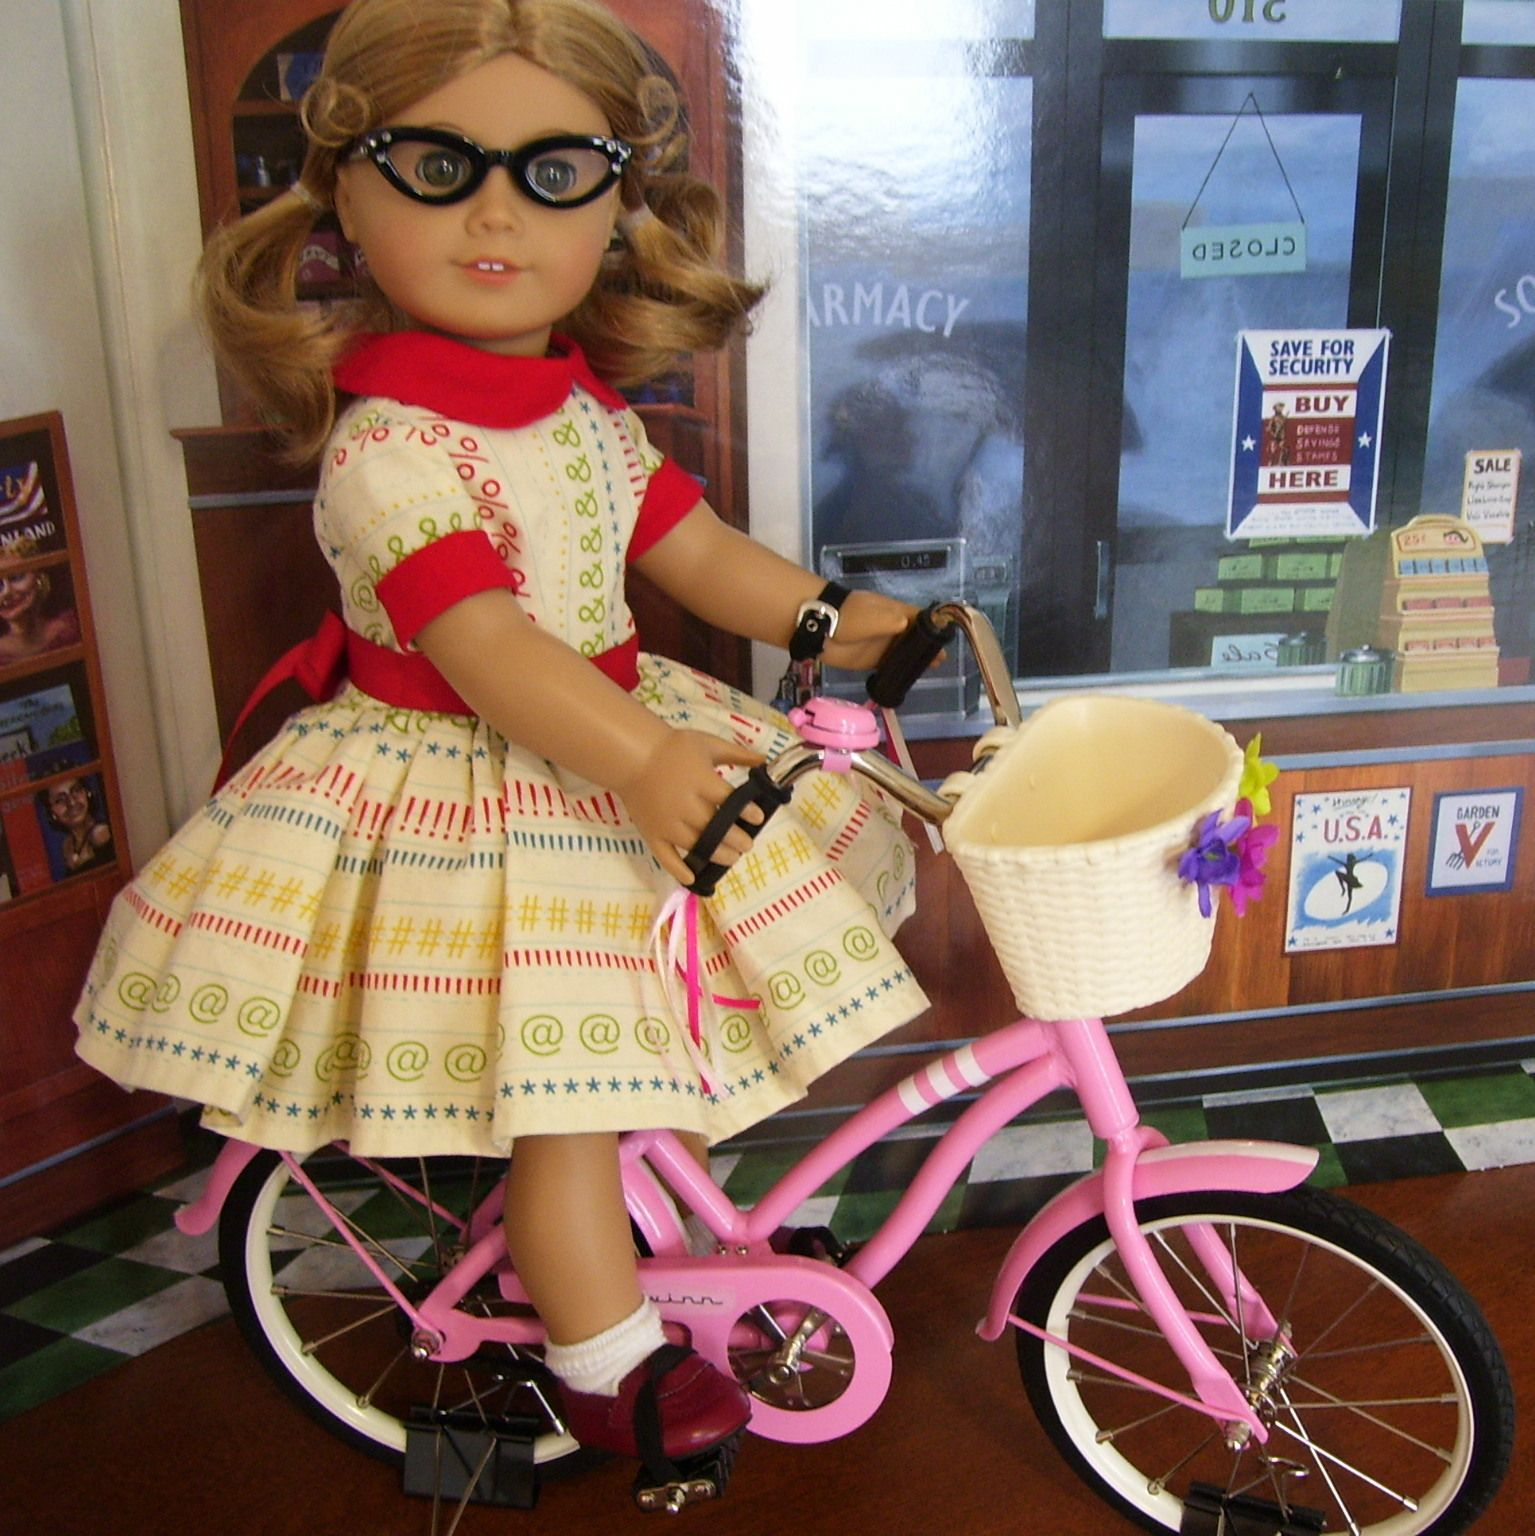 Our Generation Doll Bike From Target Slightly Modified Makes A